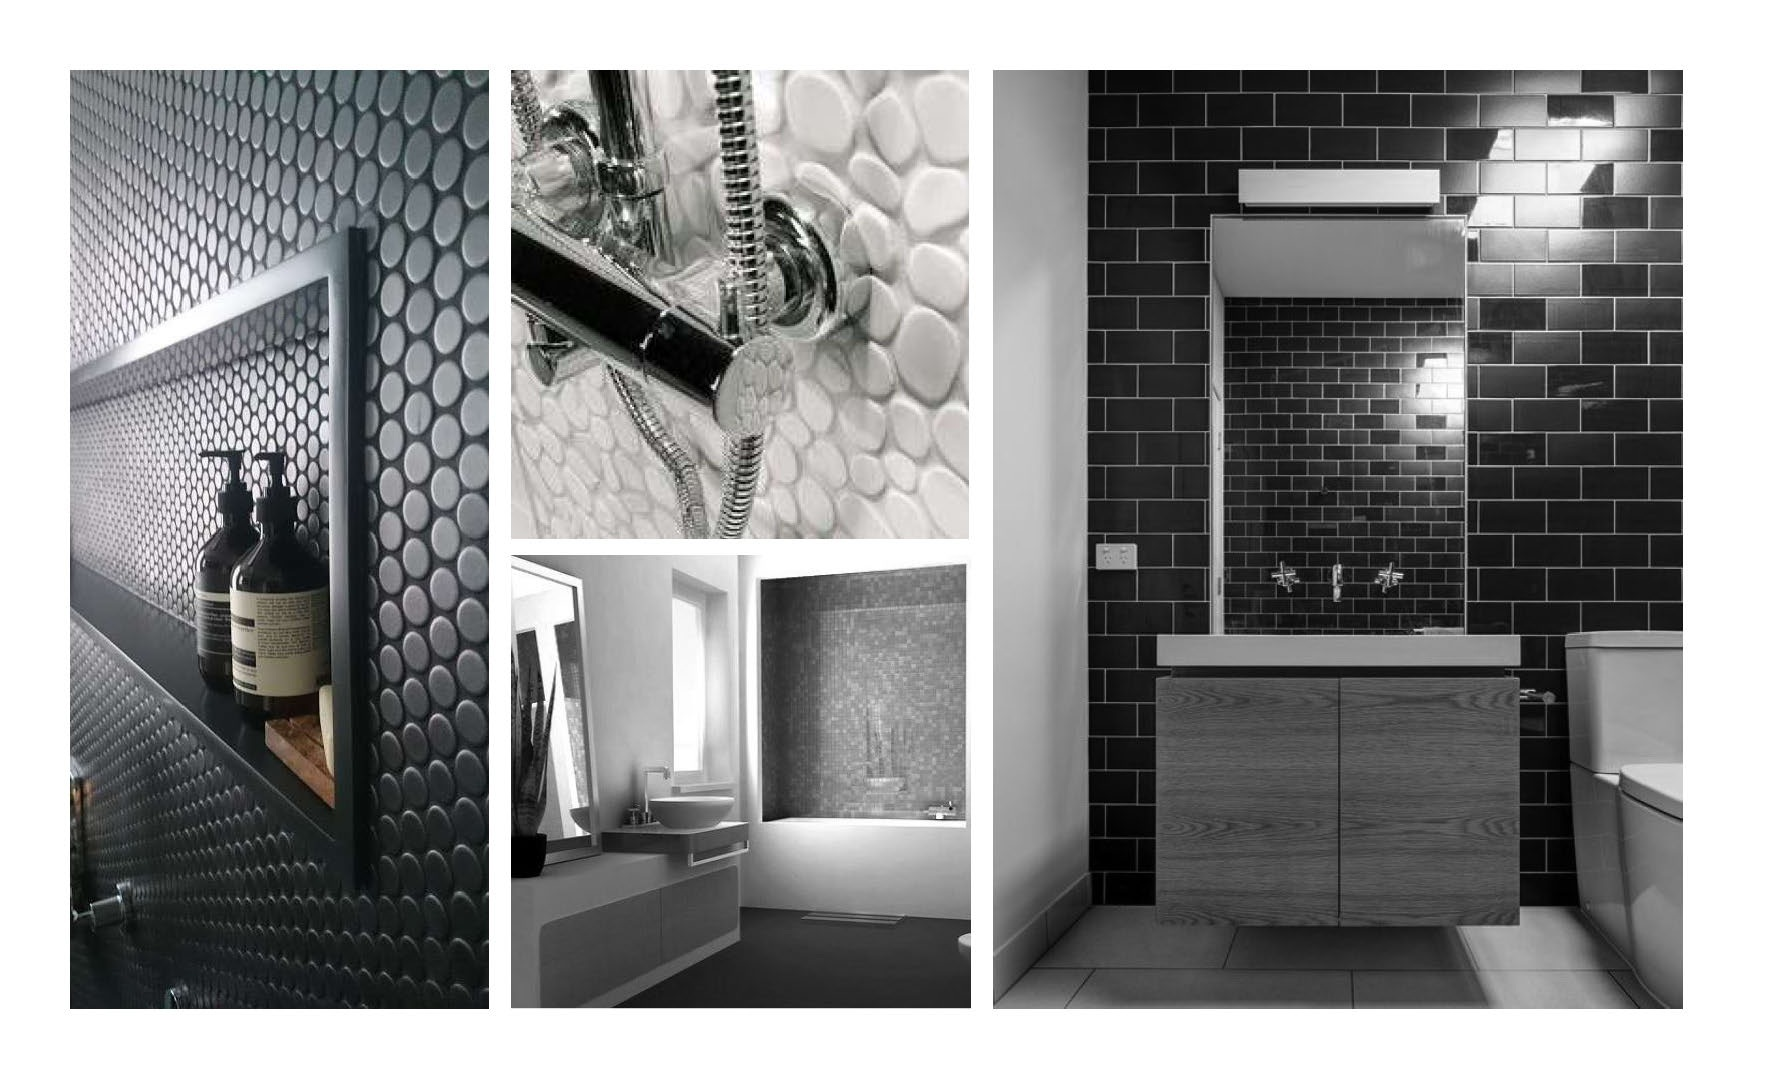 There is an interplay of carefully selected shapes, textures and sizes